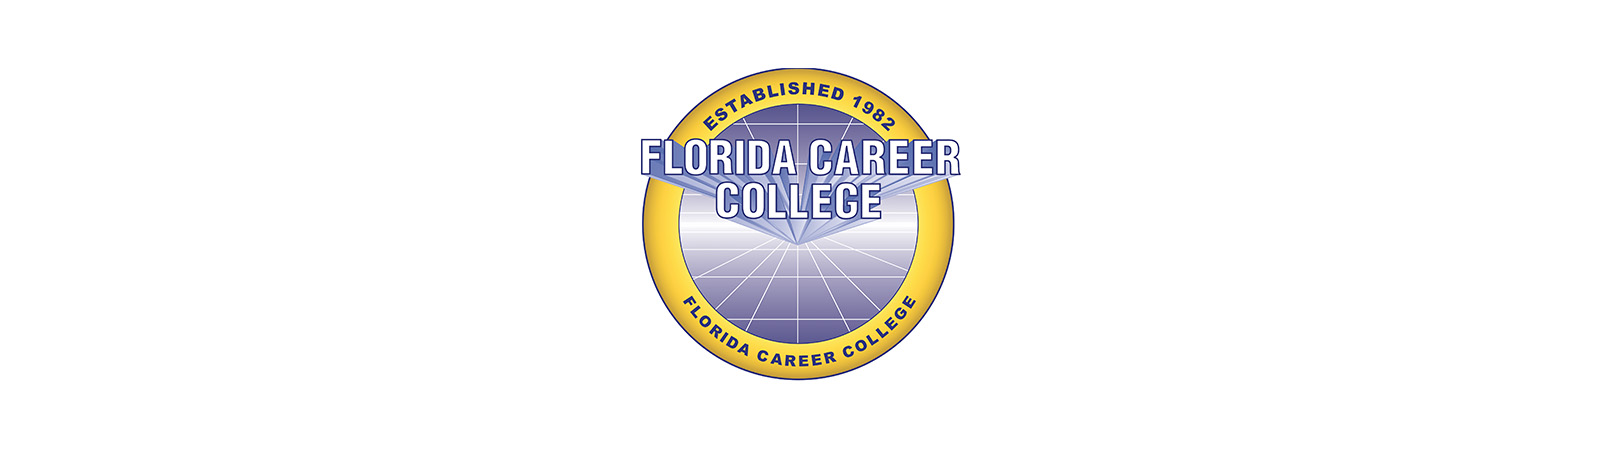 Florida Career College logo image